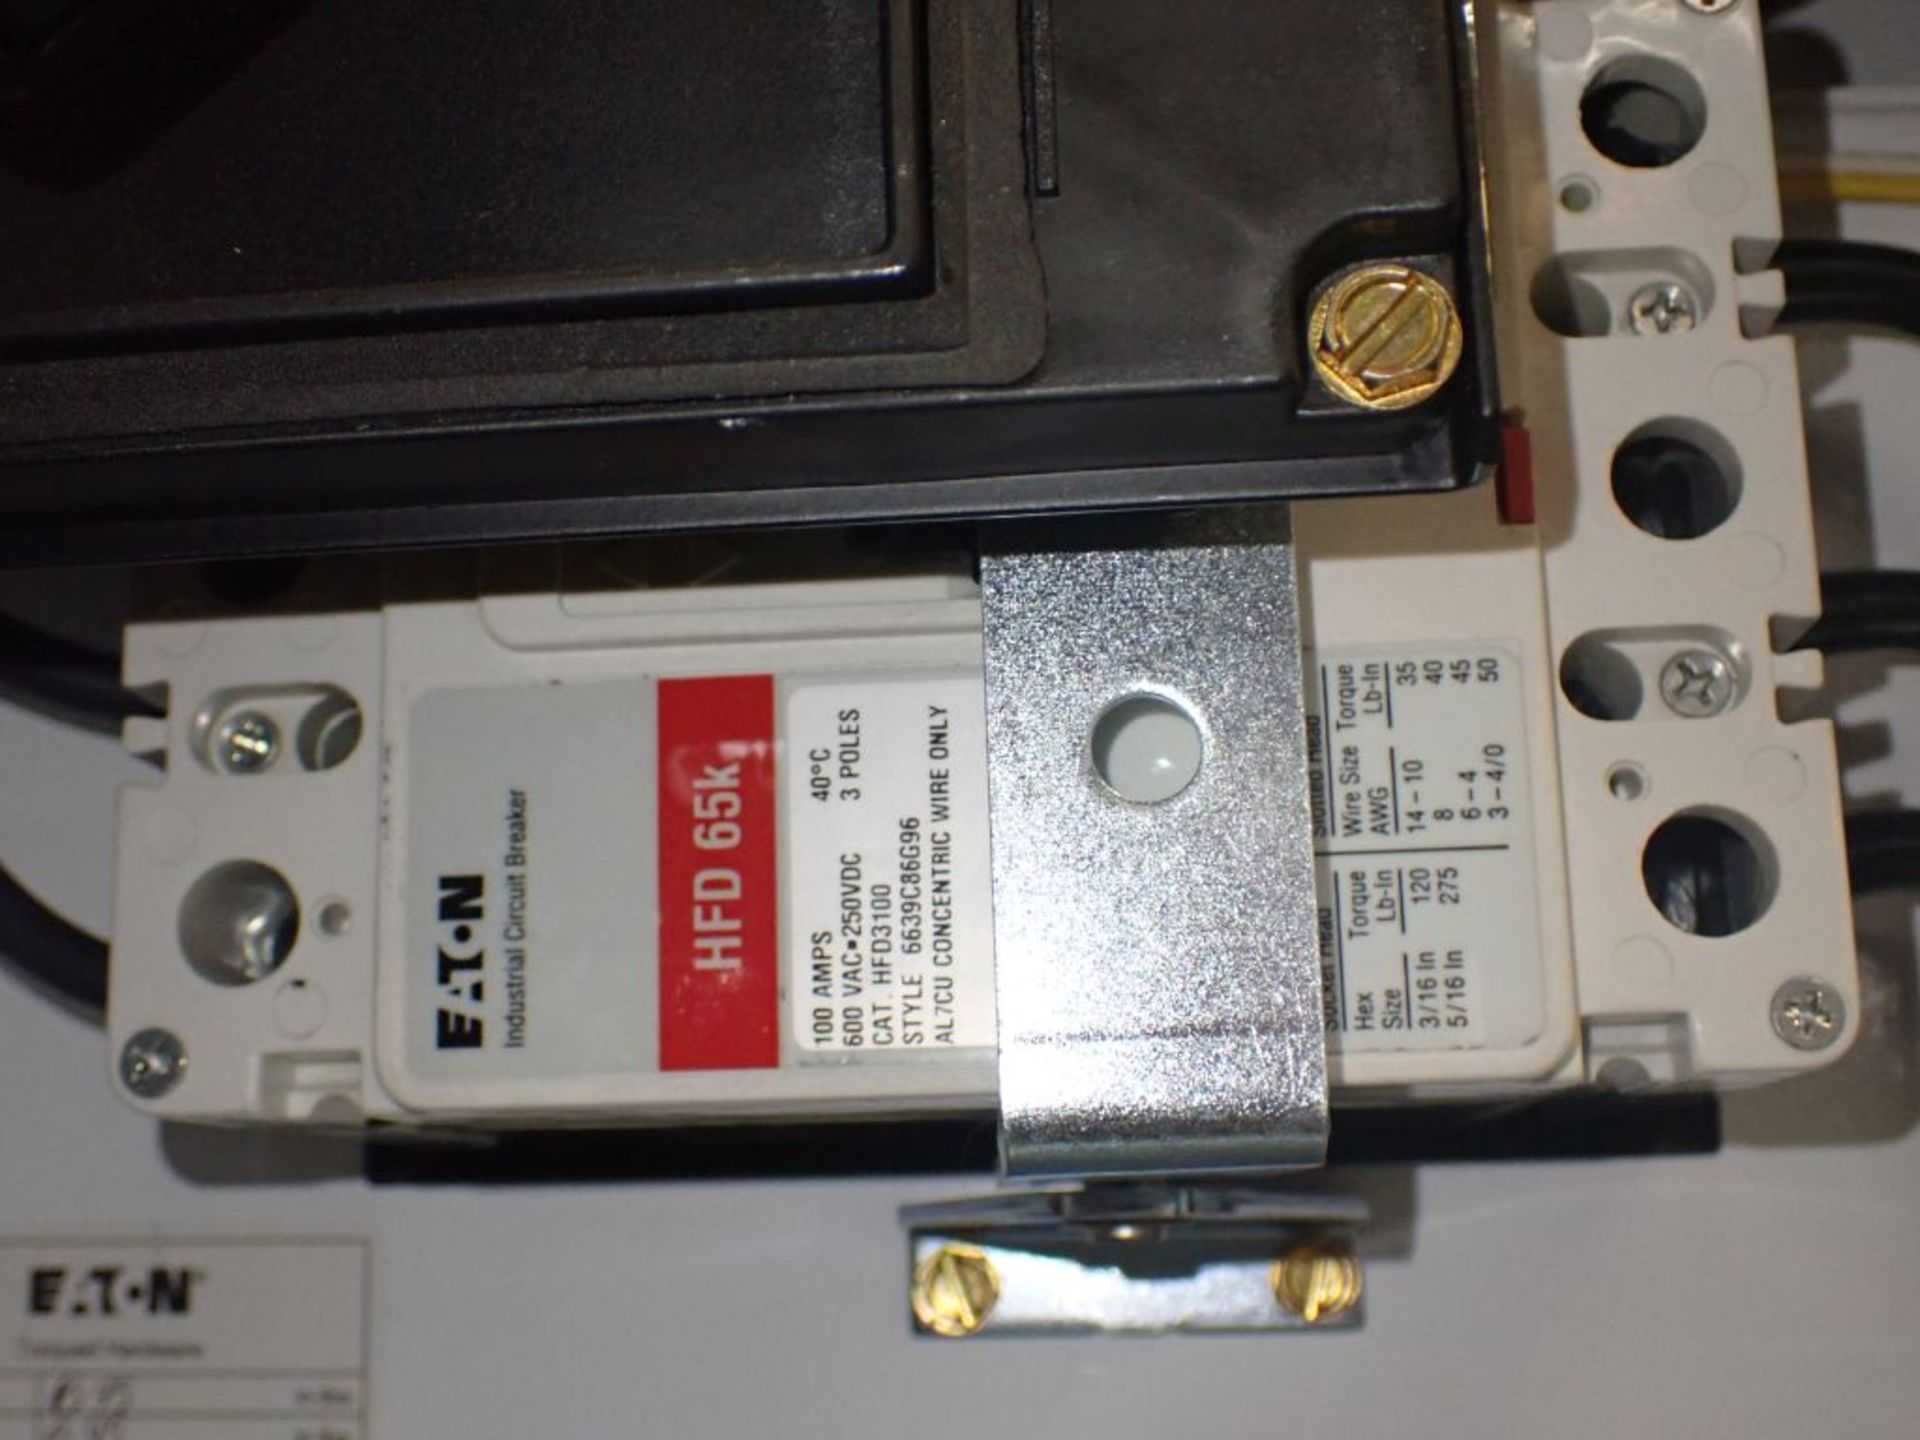 Eaton Freedom Flashgard Motor Control Center   (3) F216-15A-10HP; (1) FDRB-125A, with 150A - Image 40 of 57